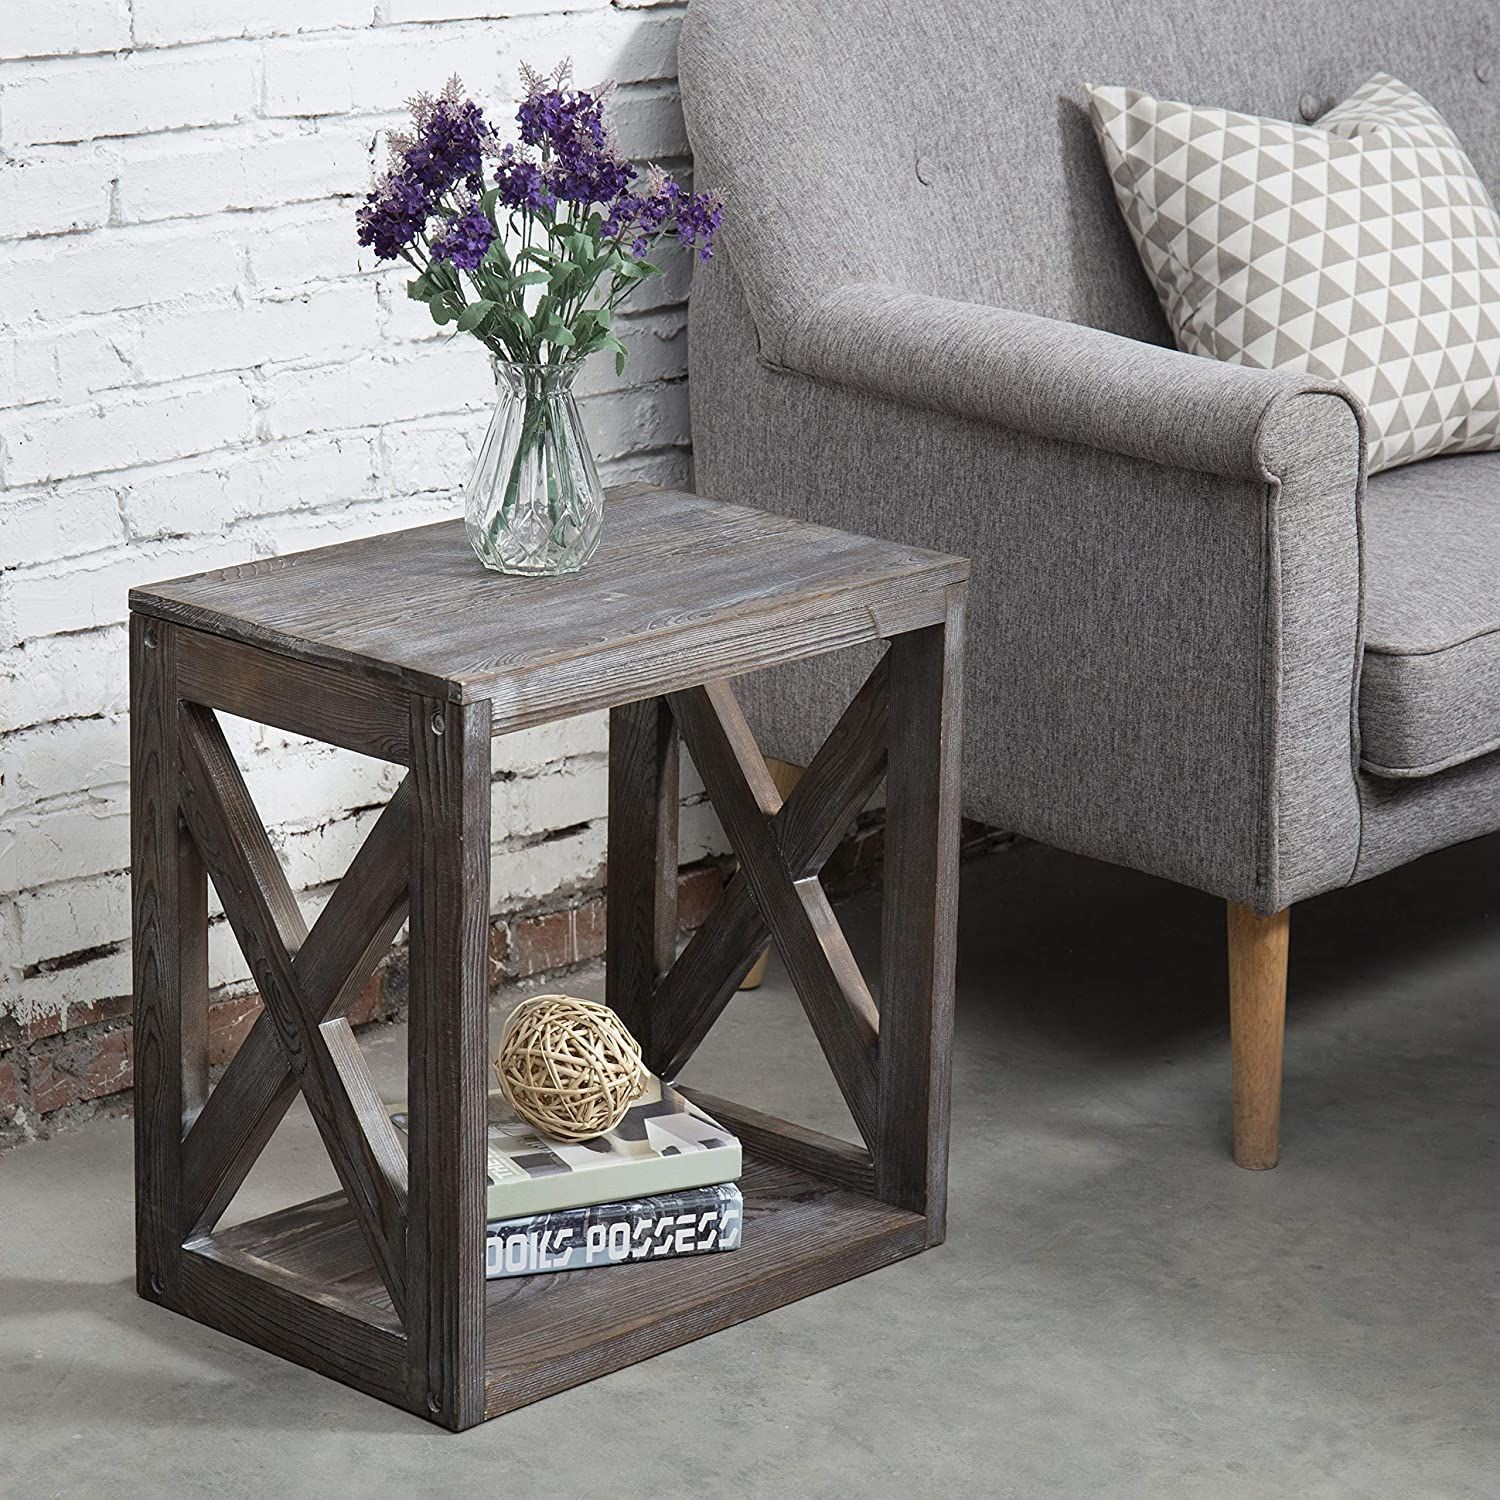 Best Rustic Accent Tables Find The Best Farmhouse End Tables Accent Tables And Accent Furniture At Farmhouse Goals